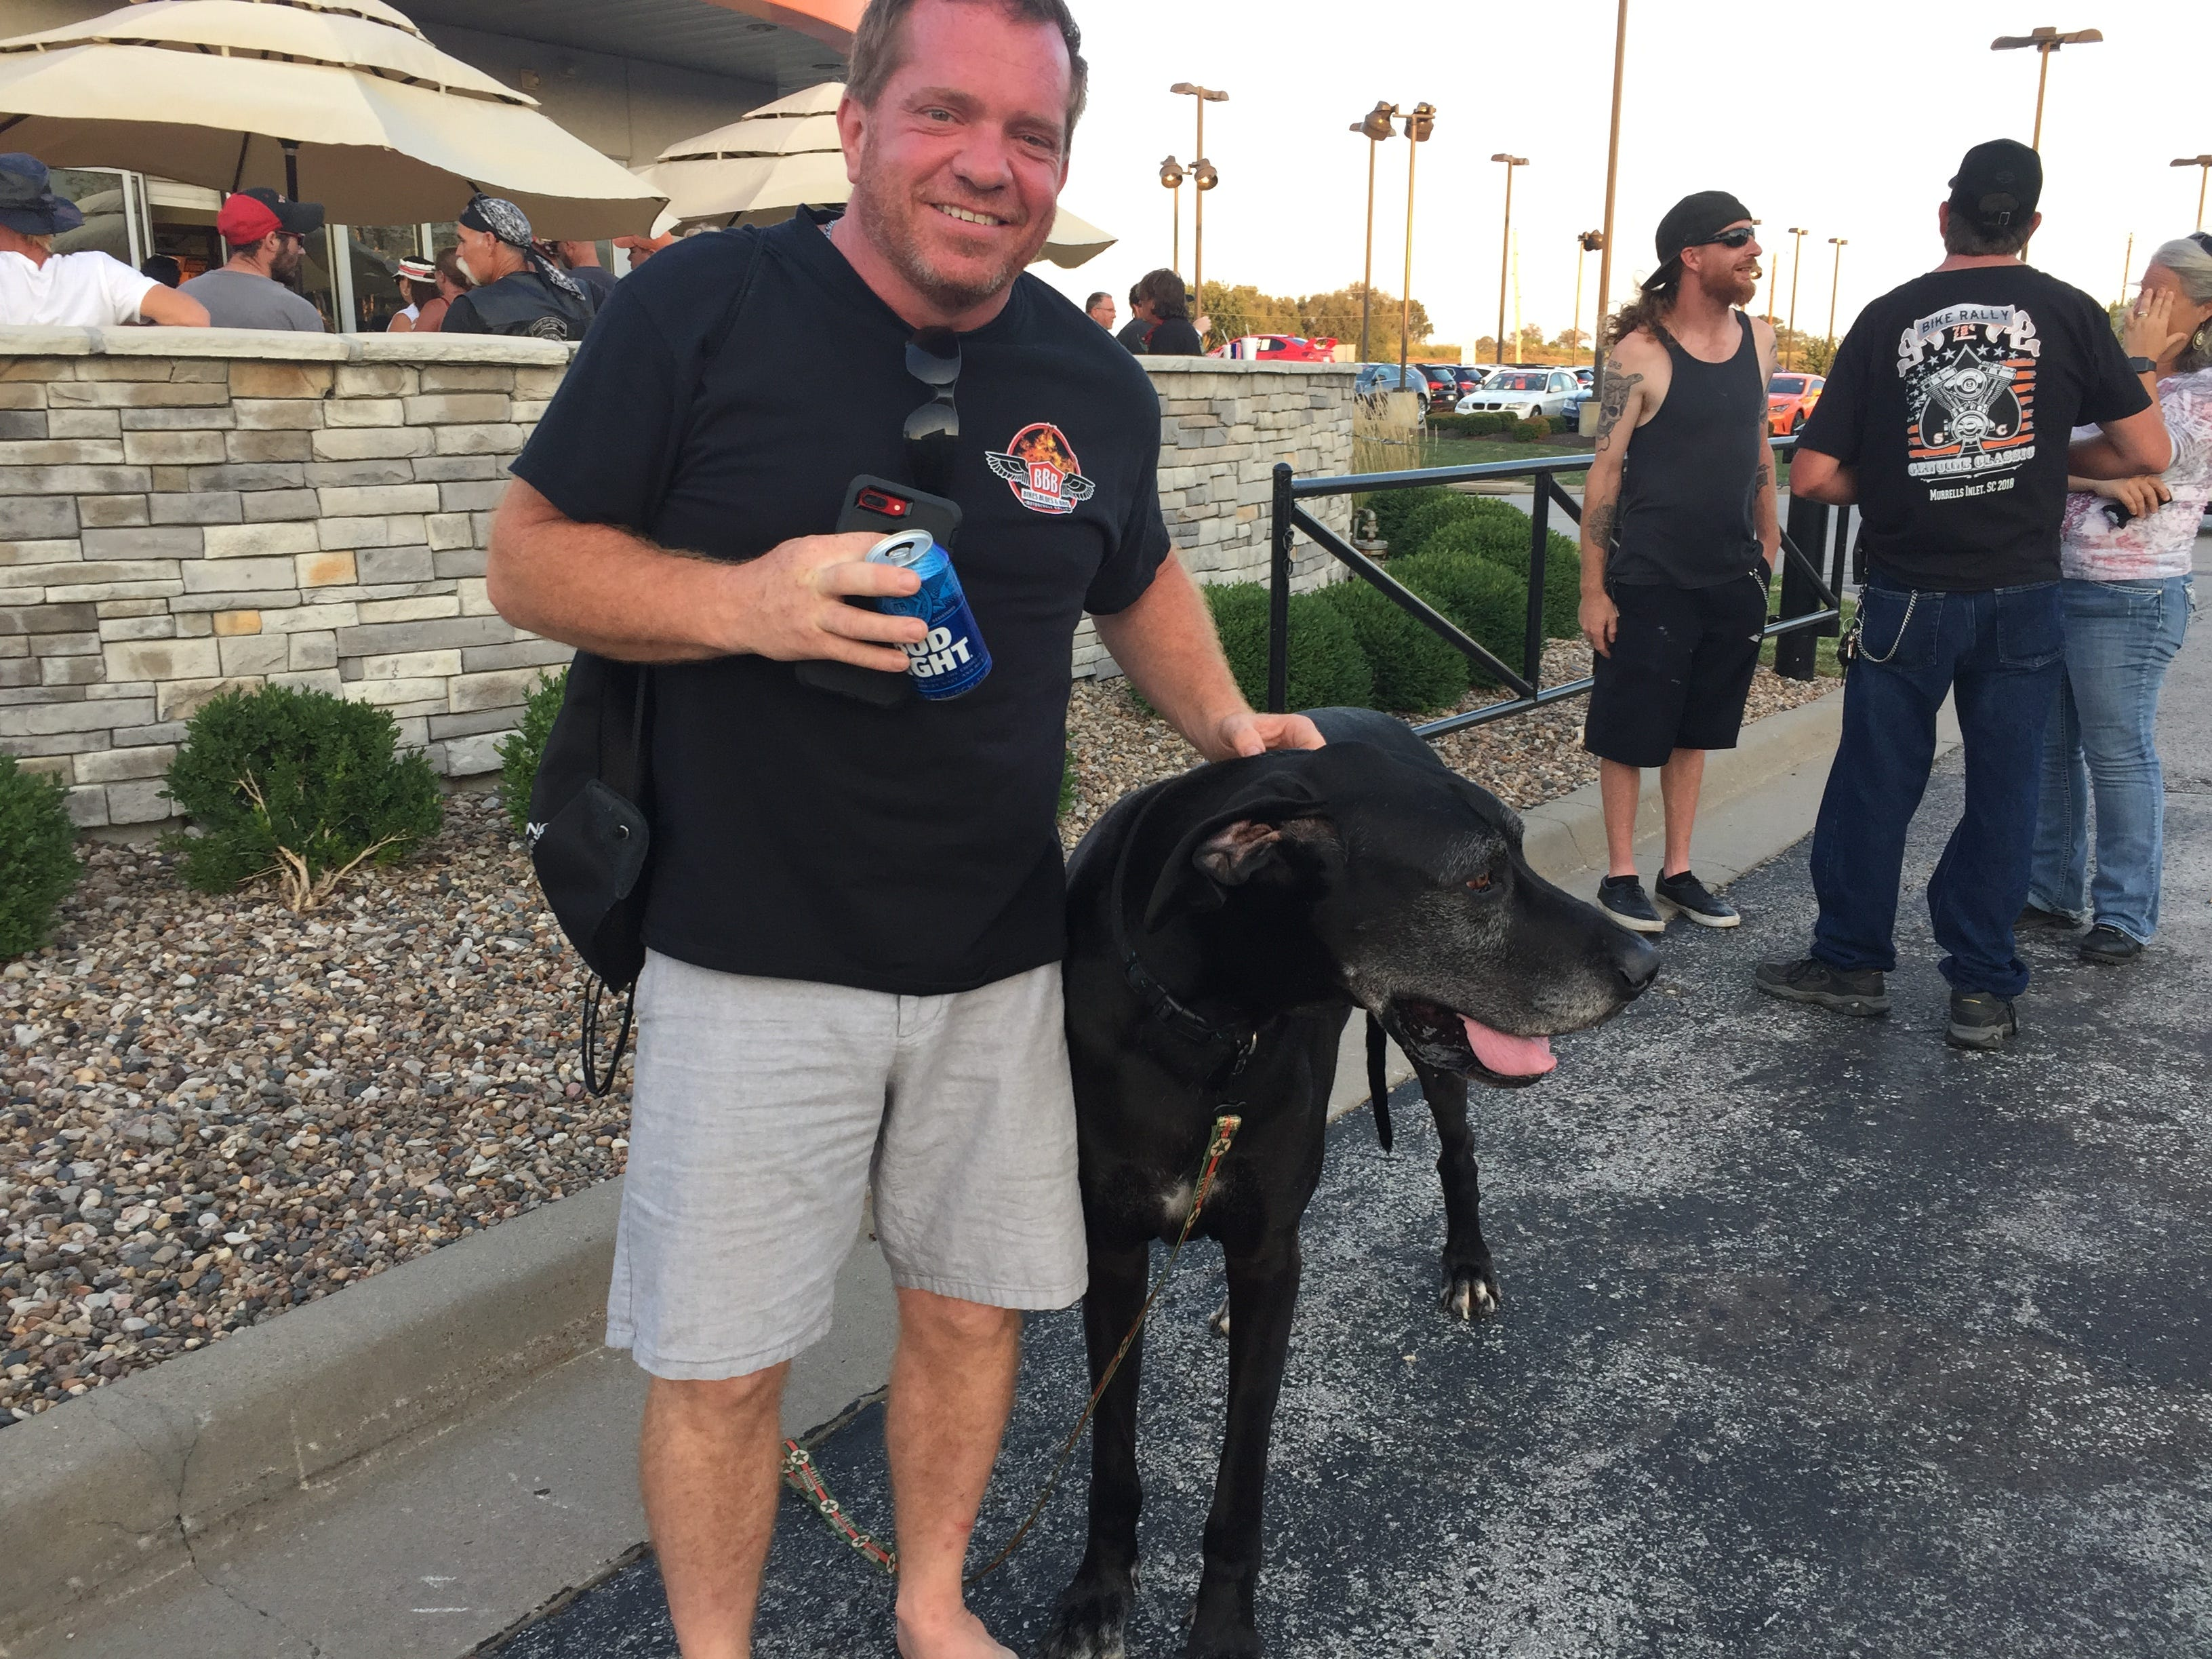 Gus, a 9-year-old Great Dane, was the only dog spotted at the Worth Harley-Davidson dealership party Aug. 25 in Kansas City. Gus' companion is Michael McGilton.